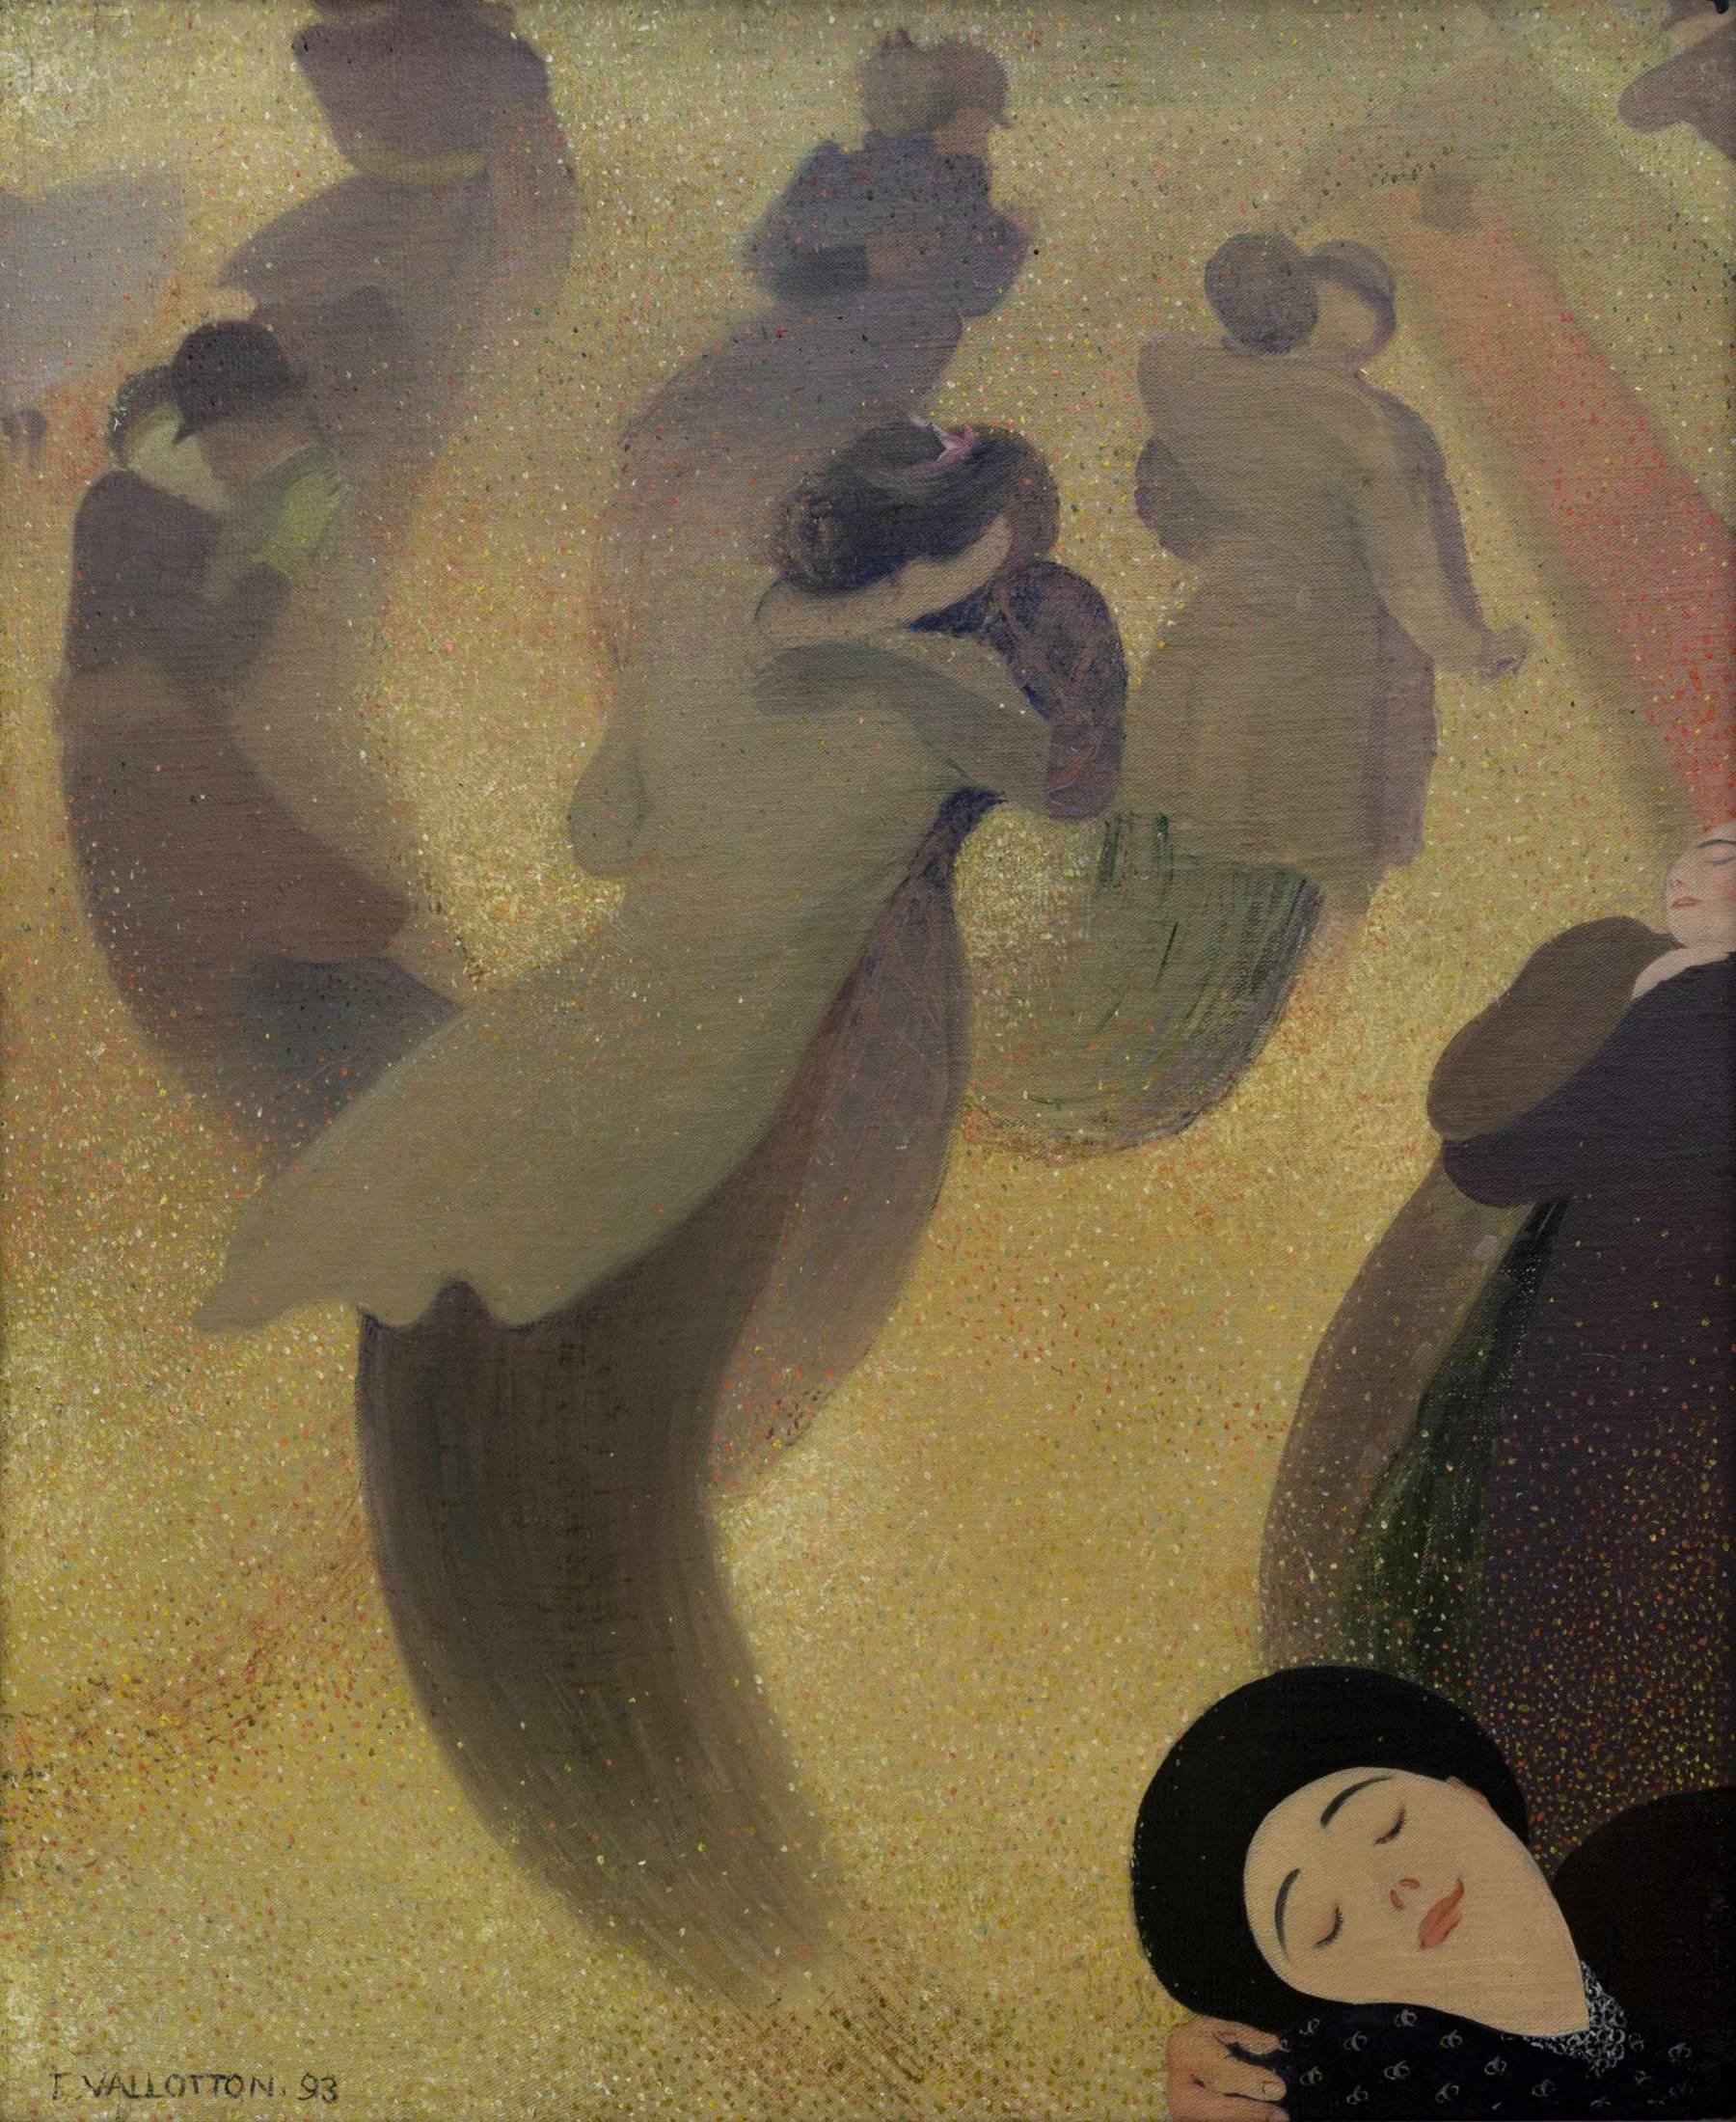 Félix Vallotton, La Valse